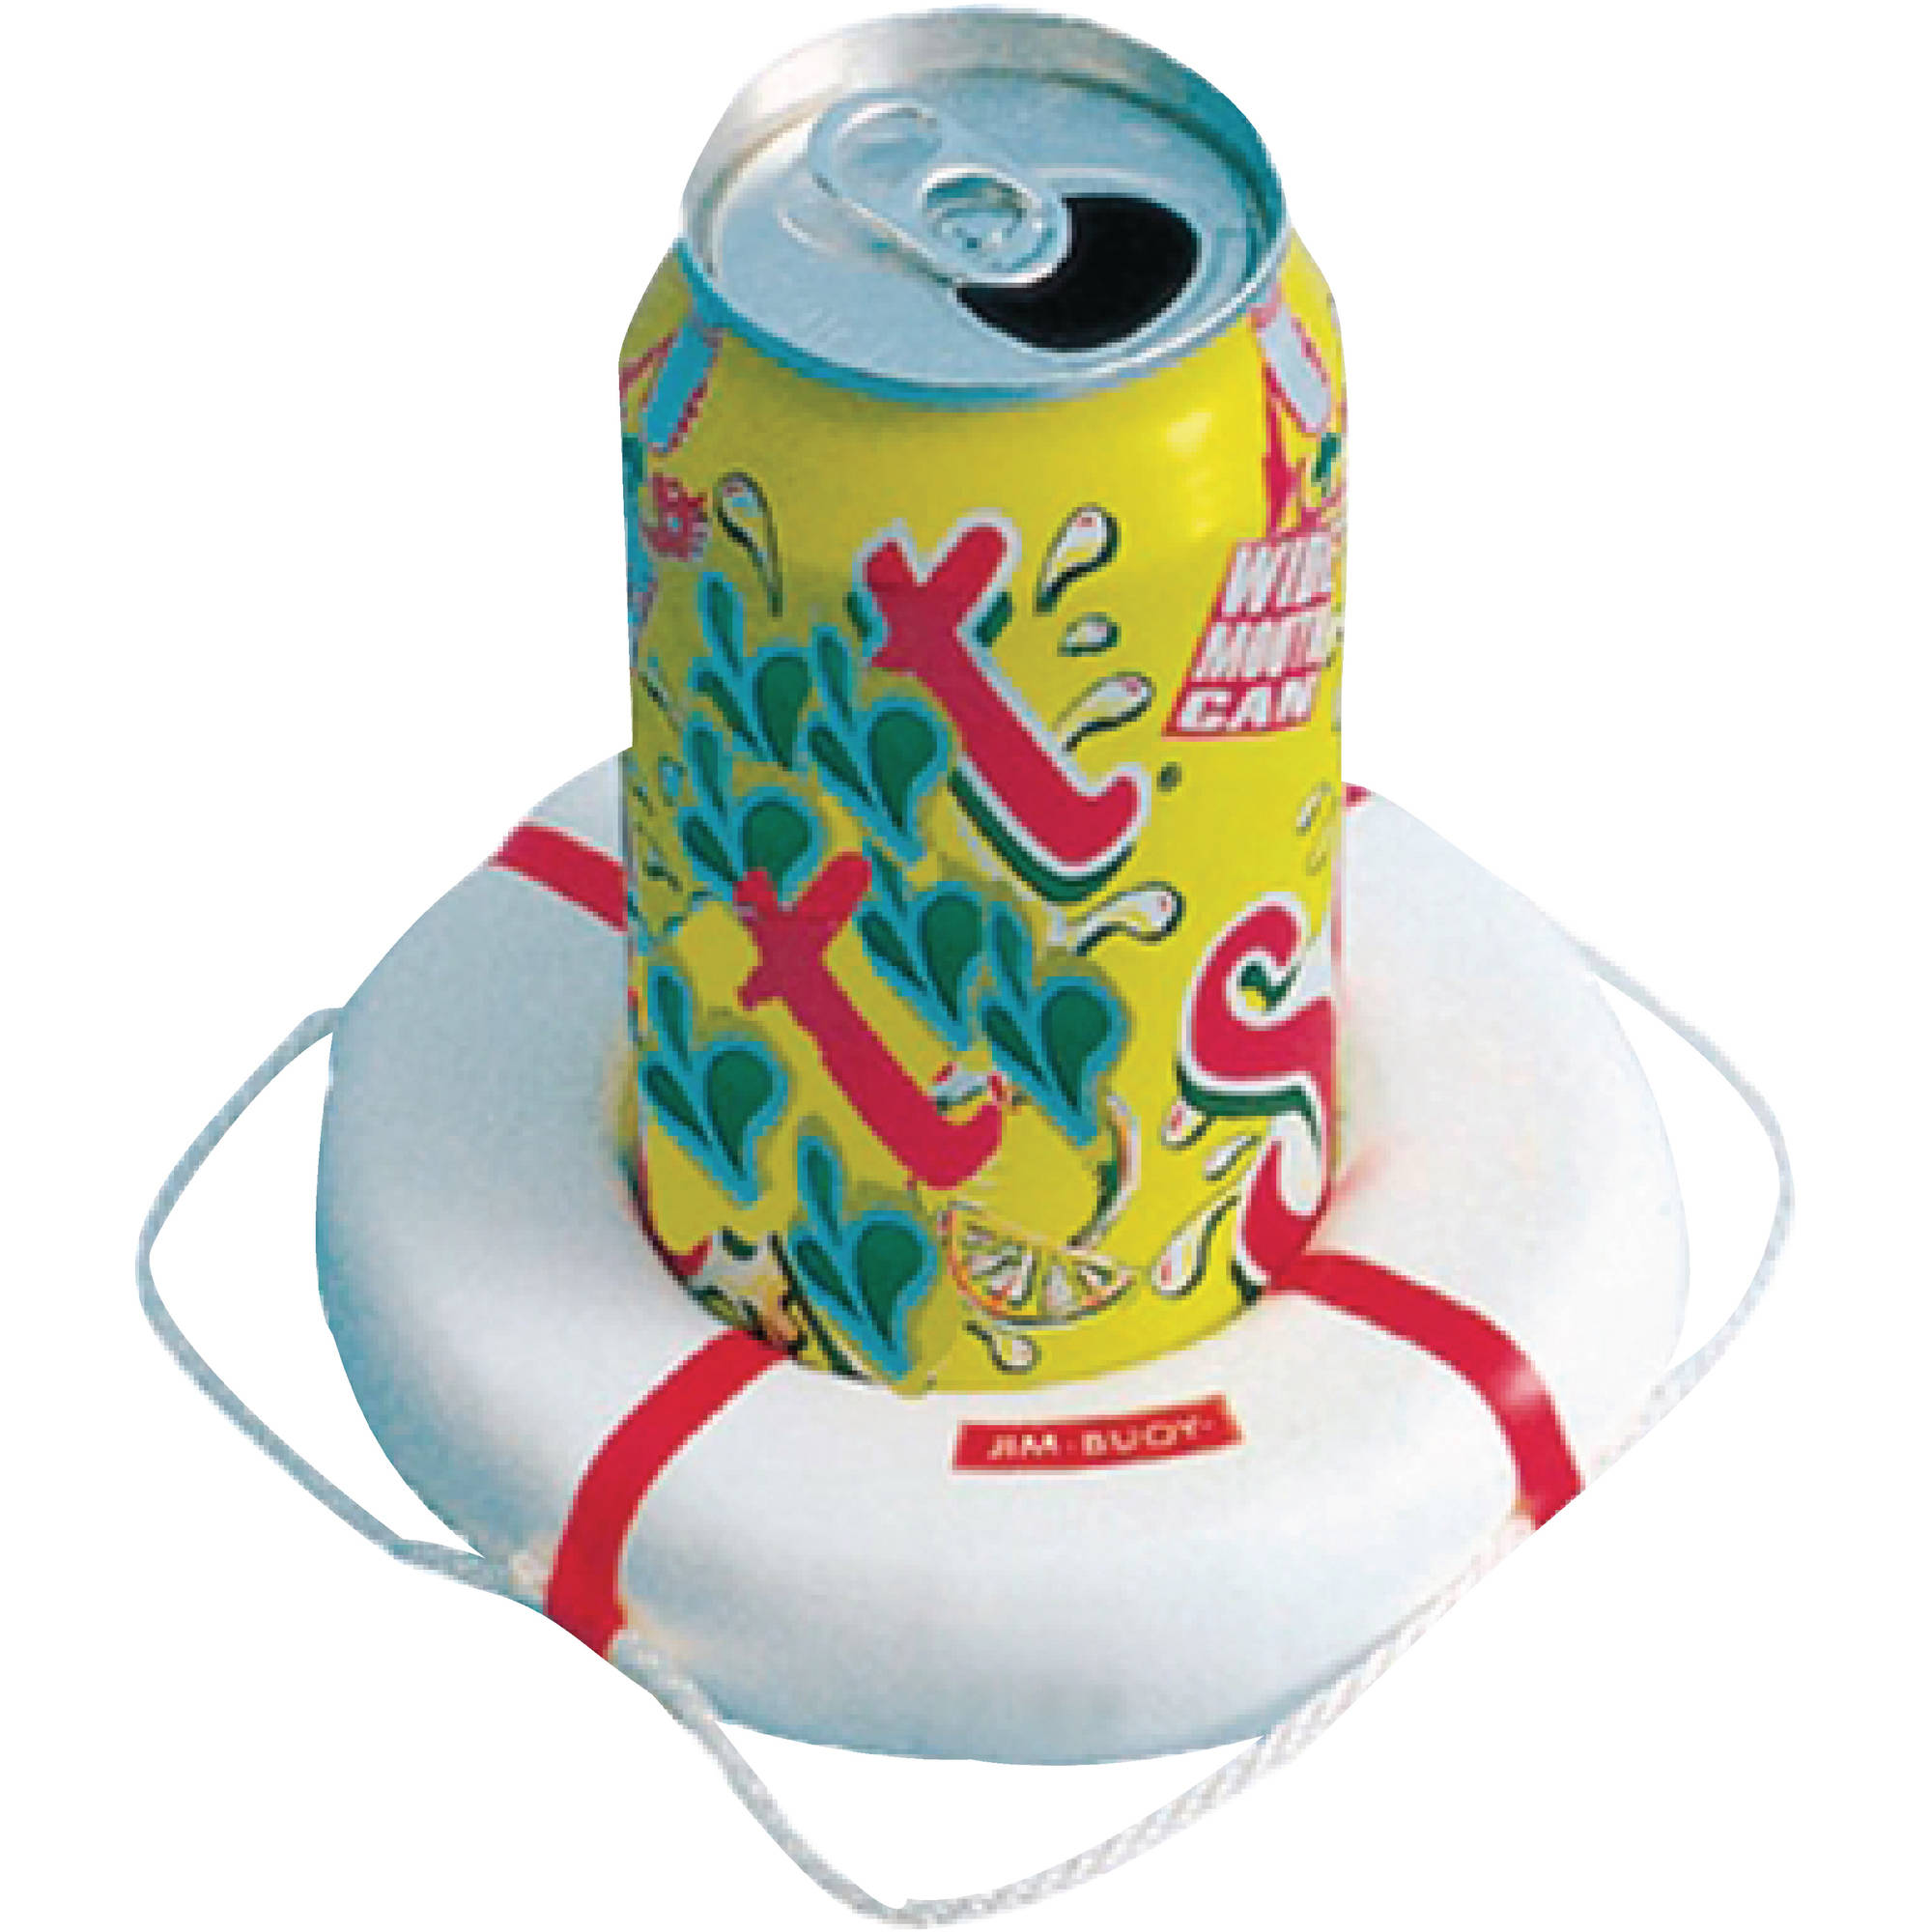 Jim-Buoy 400 Life Ring Style Coasters, 6pk, Assorted Colors